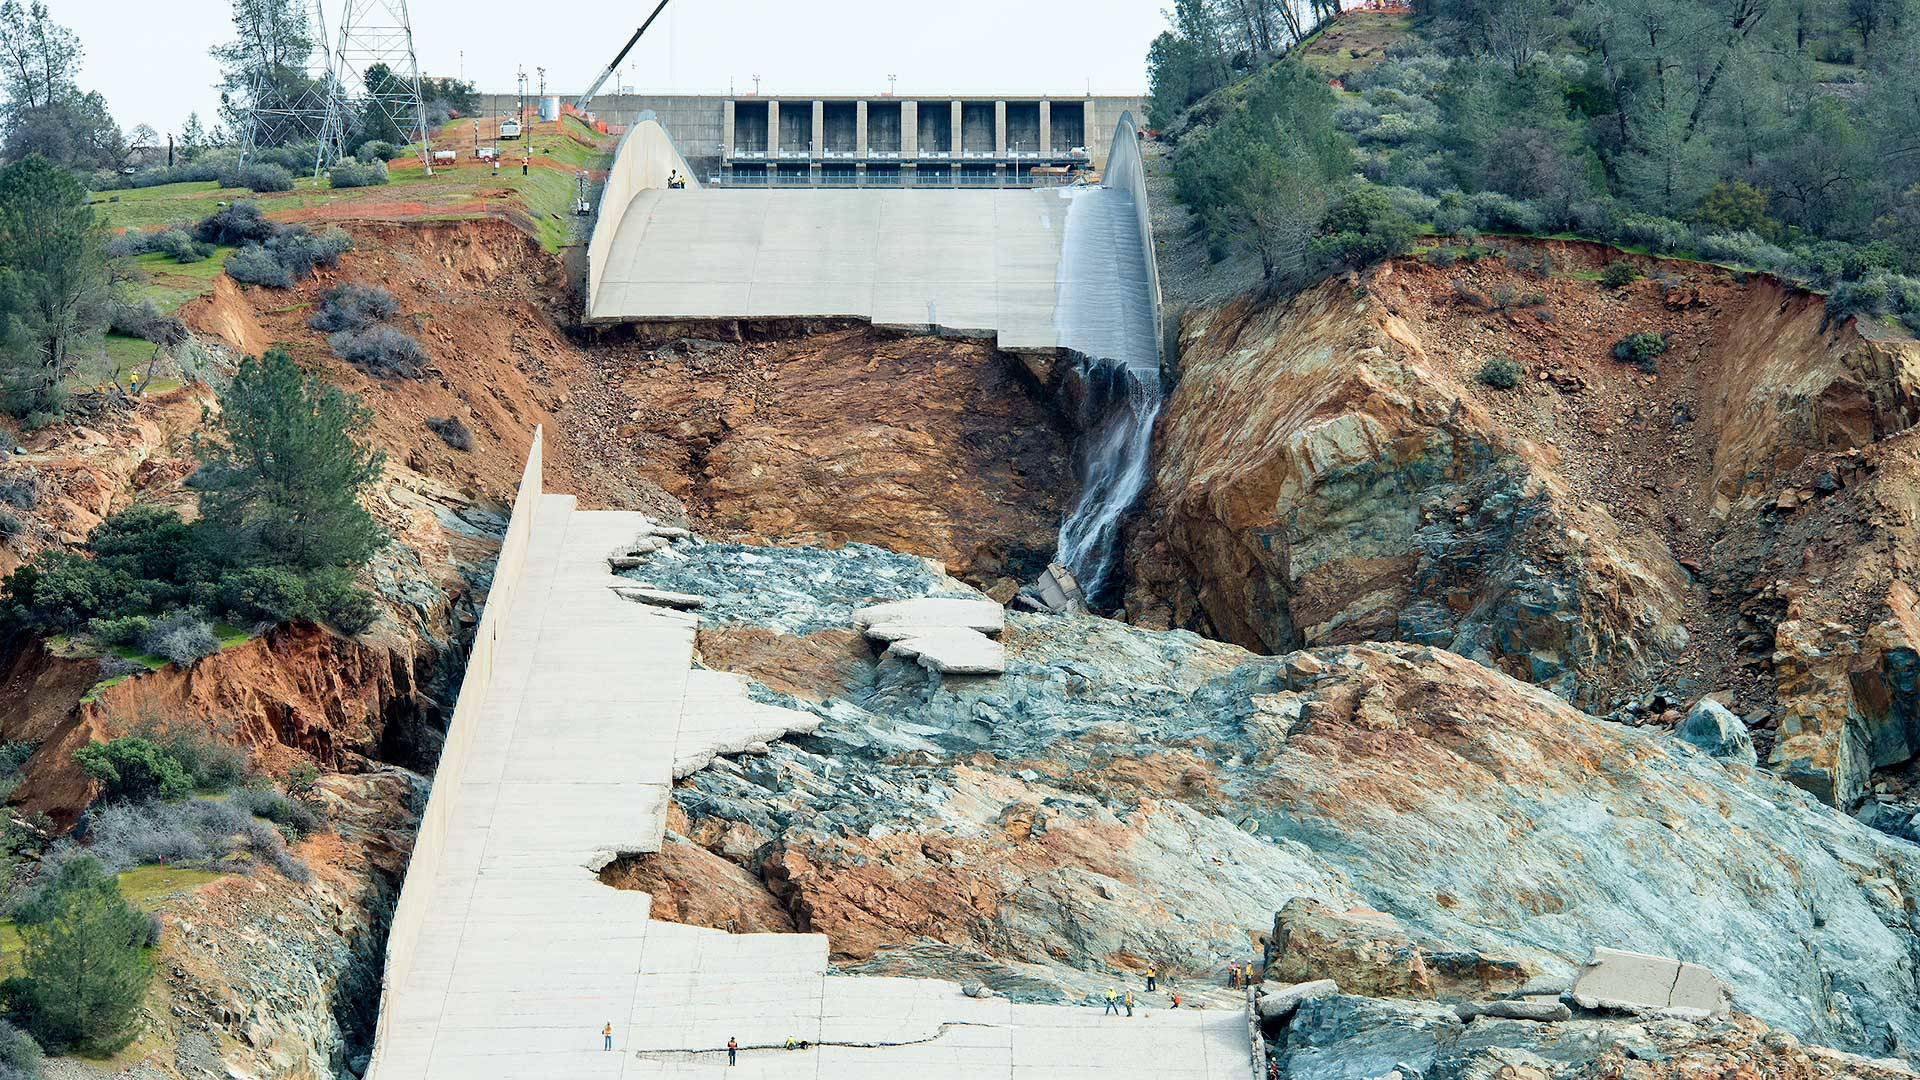 """Ruins of the main spillway at Oroville Dam reveal a blend of """"fresh"""" (blue-gray) rock and """"weathered"""" (reddish-brown) rock underneath. Calif. Dept. of Water Resources"""